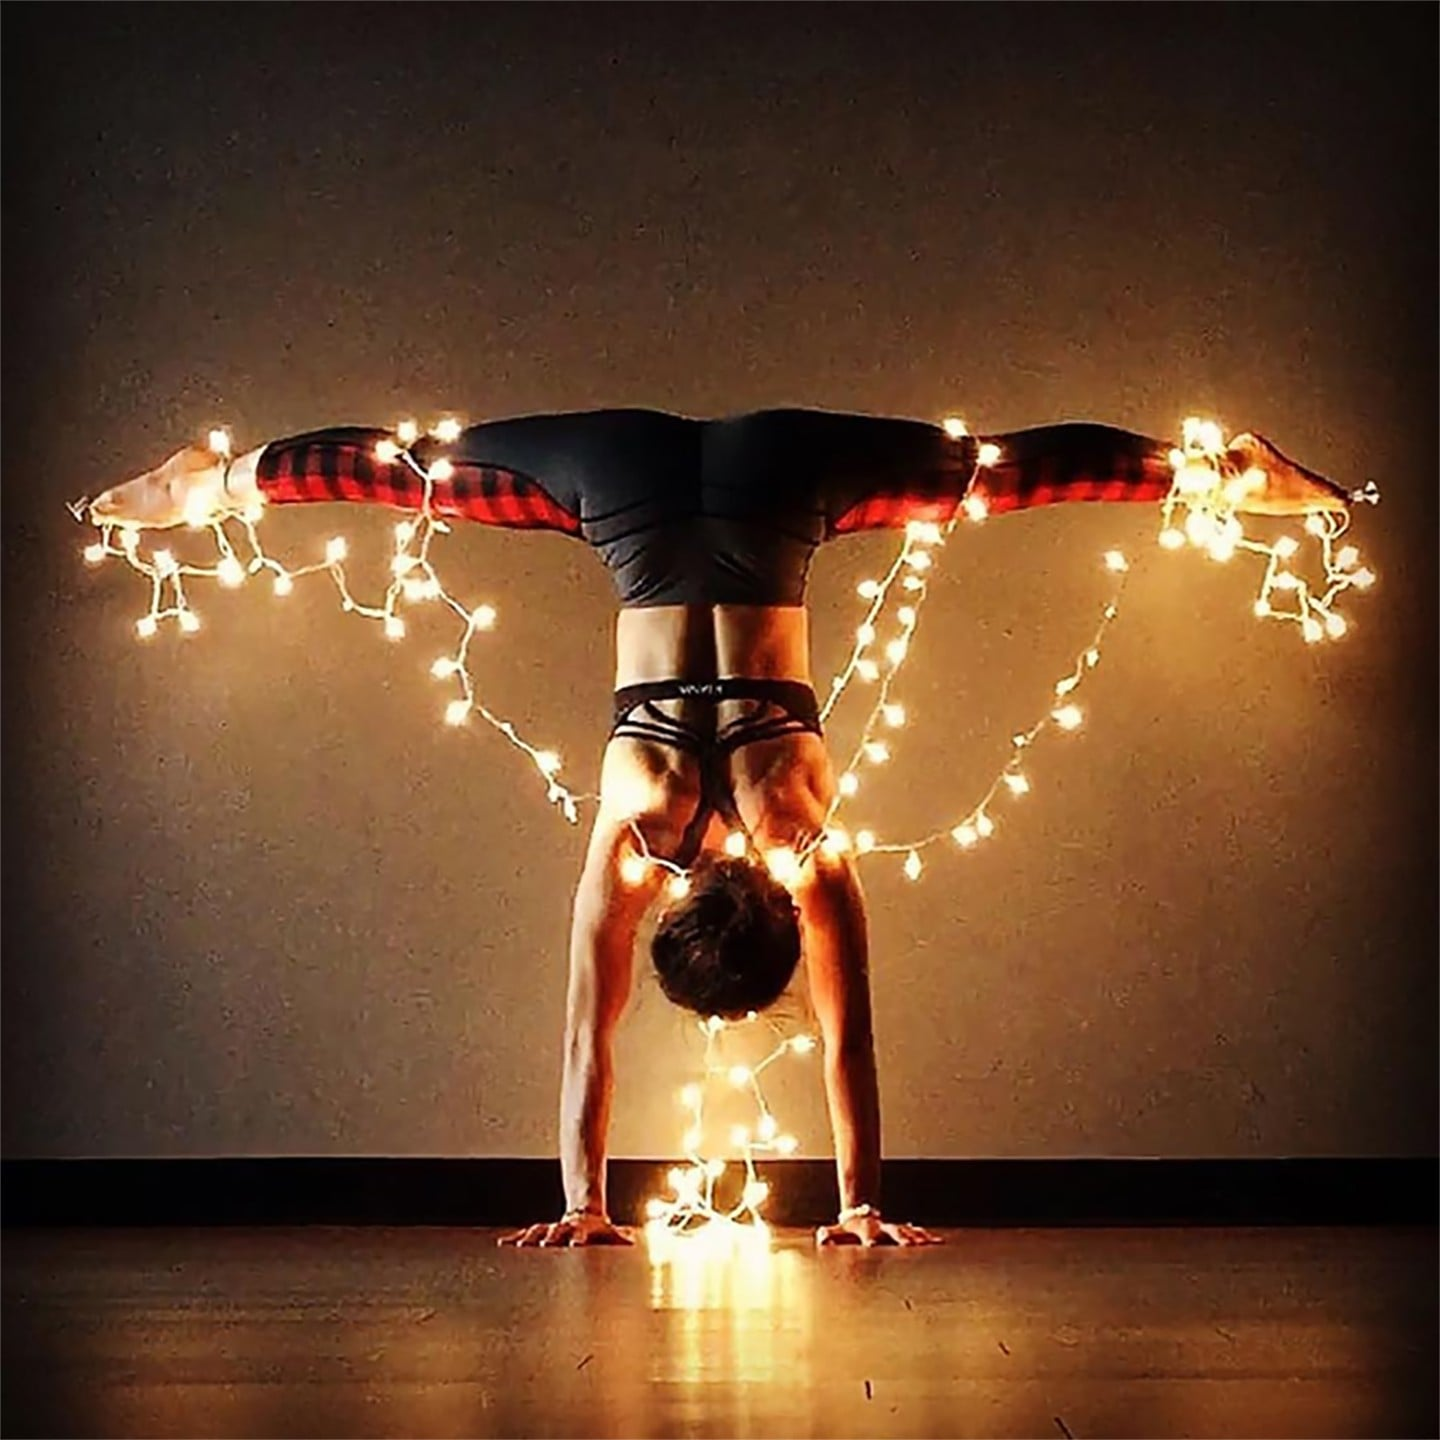 Women-Doing-Yoga-Wrapped-Christmas-Light